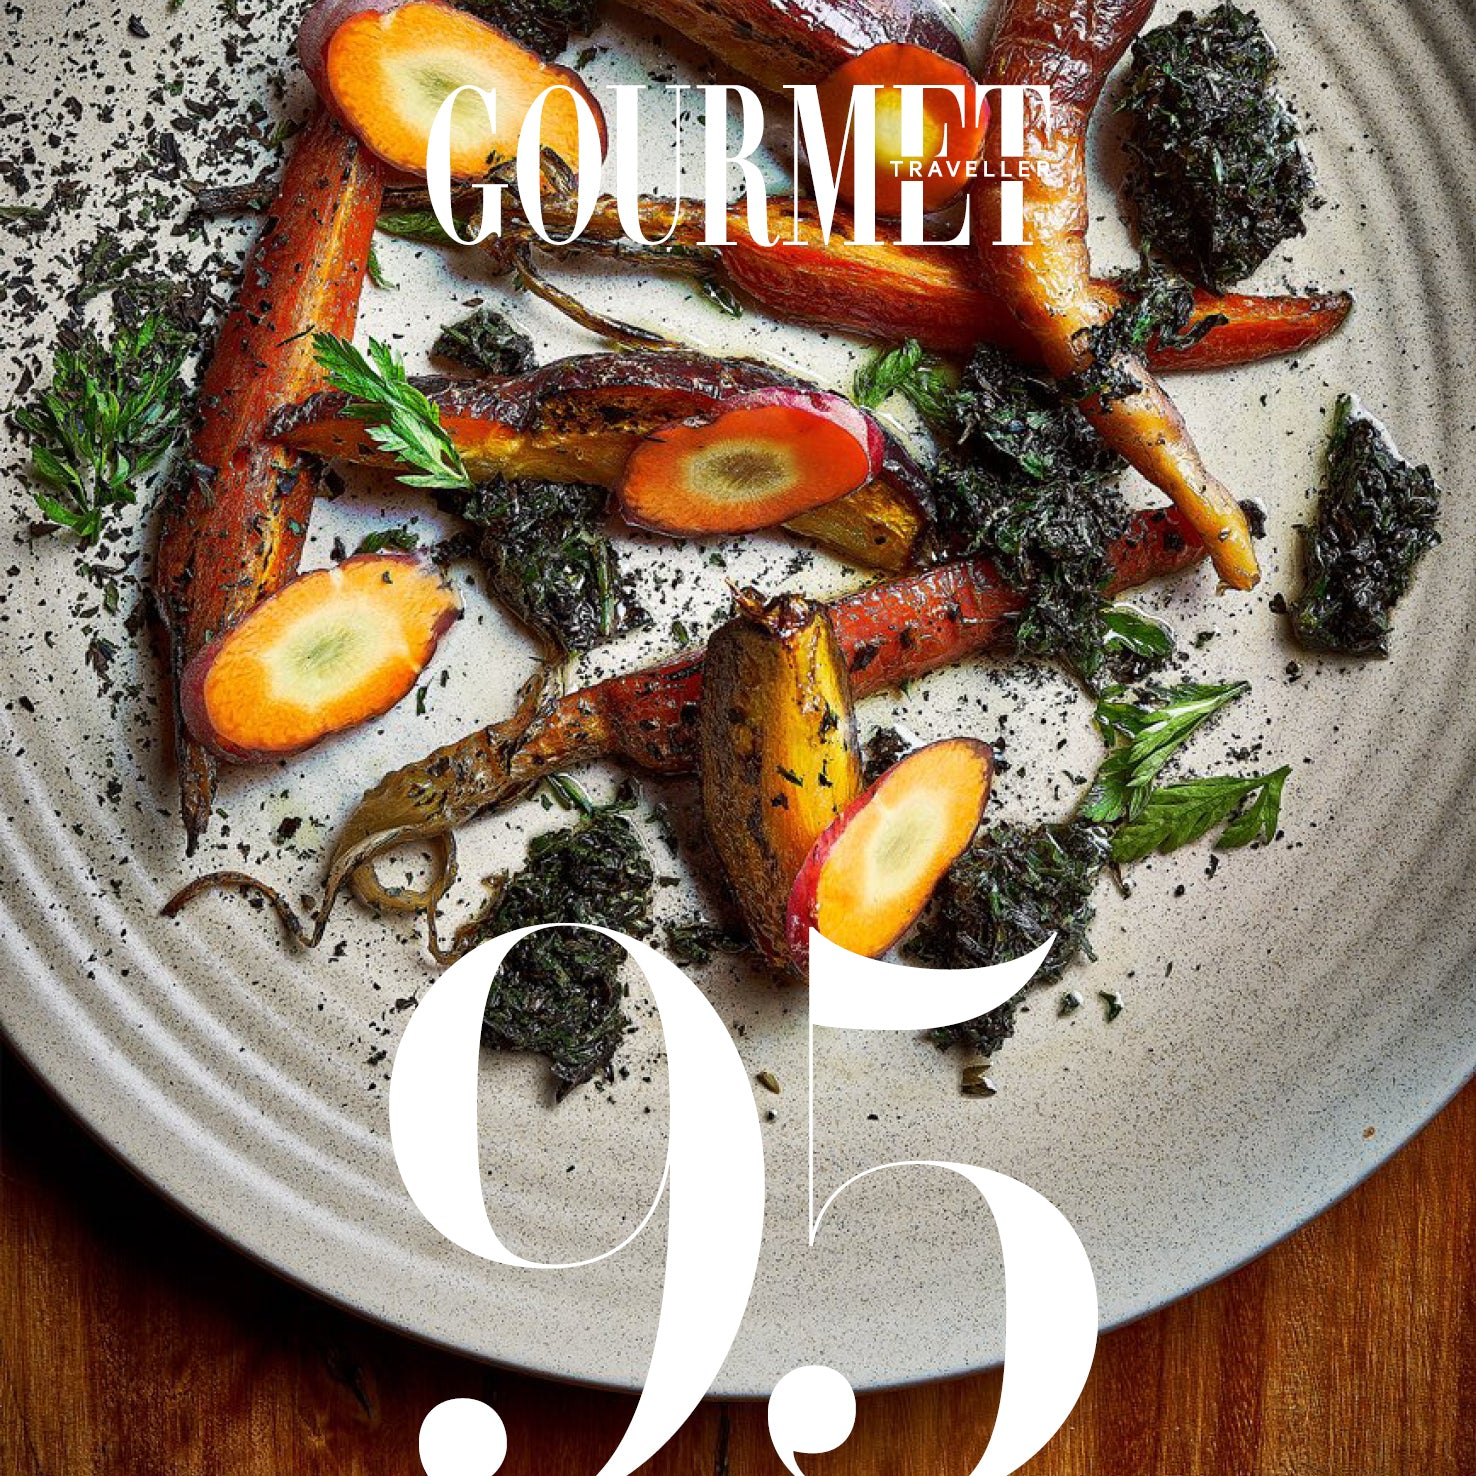 millbrook named in gourmet traveller top 100 restaurants